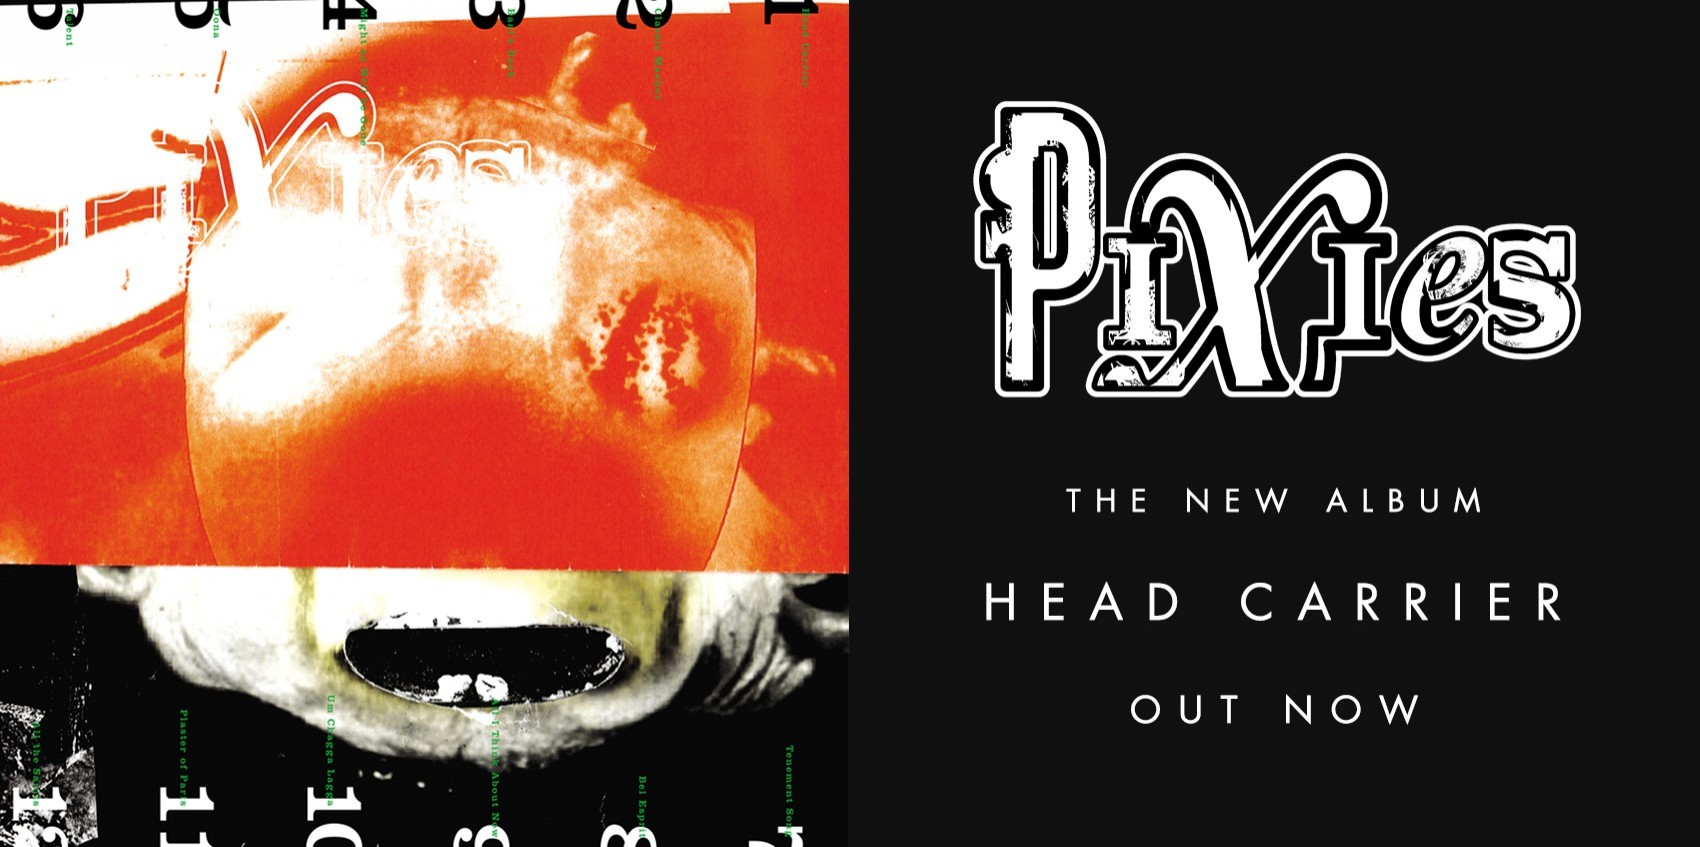 PIXIES\' ALBUM \'HEAD CARRIER\' IS OUT NOW